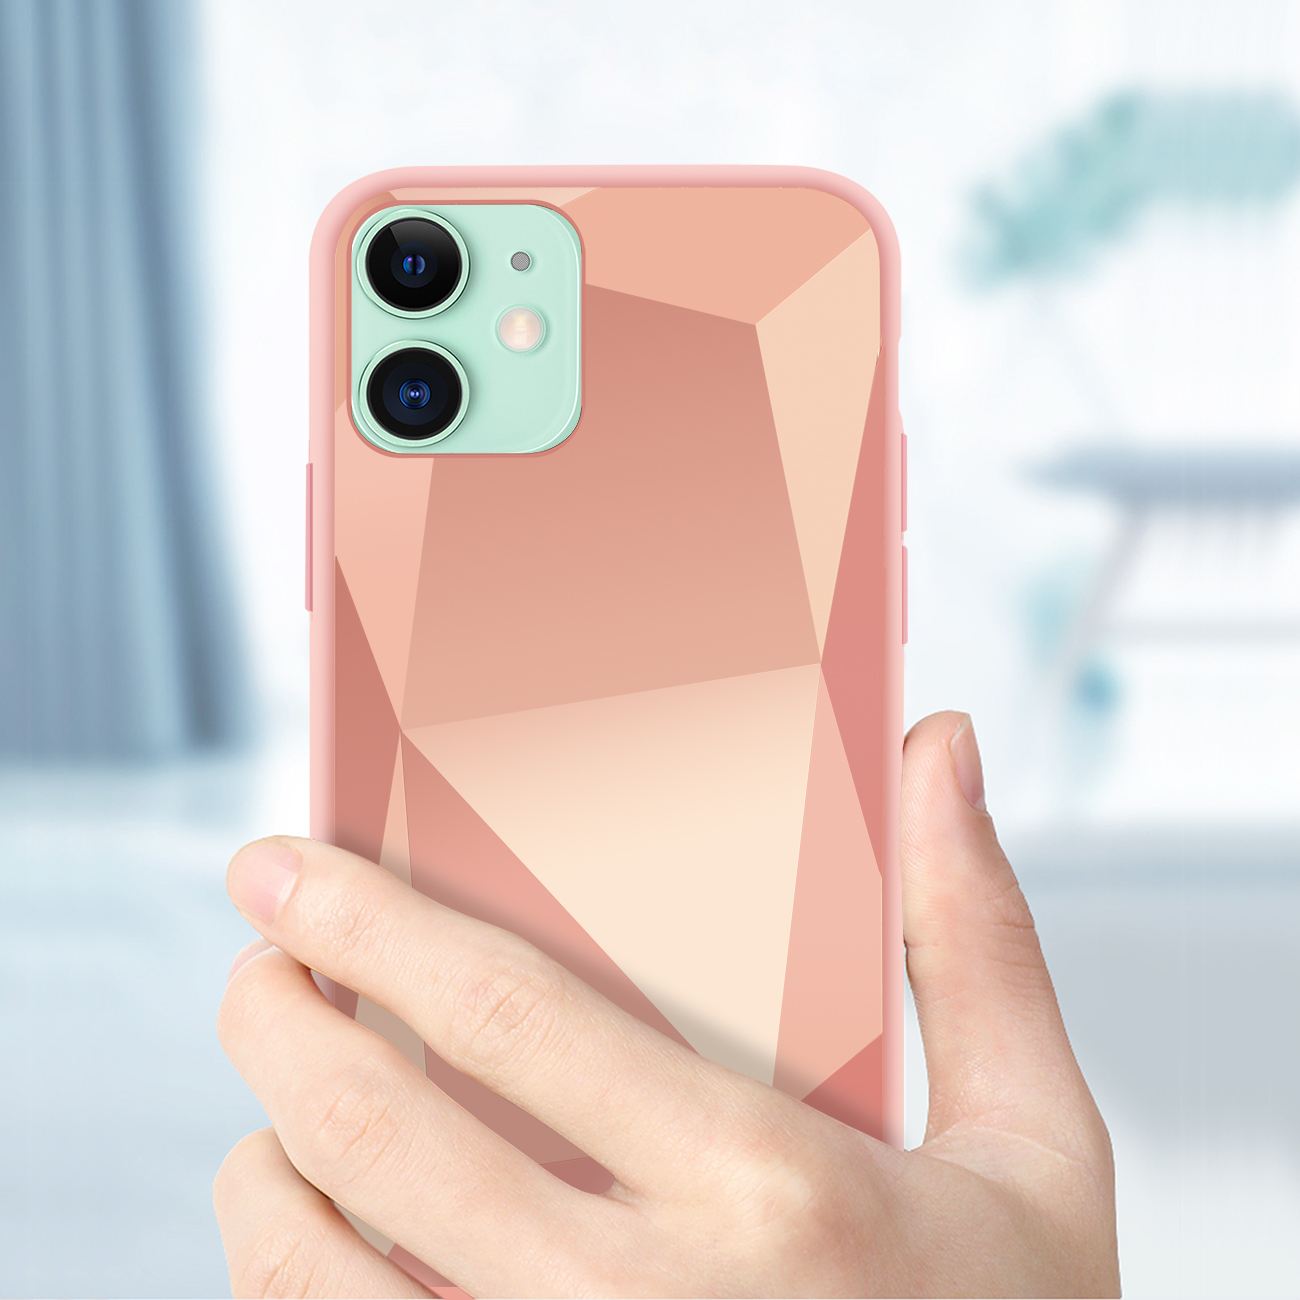 Apple iPhone 11 Apple Diamond Cases In Rose Gold